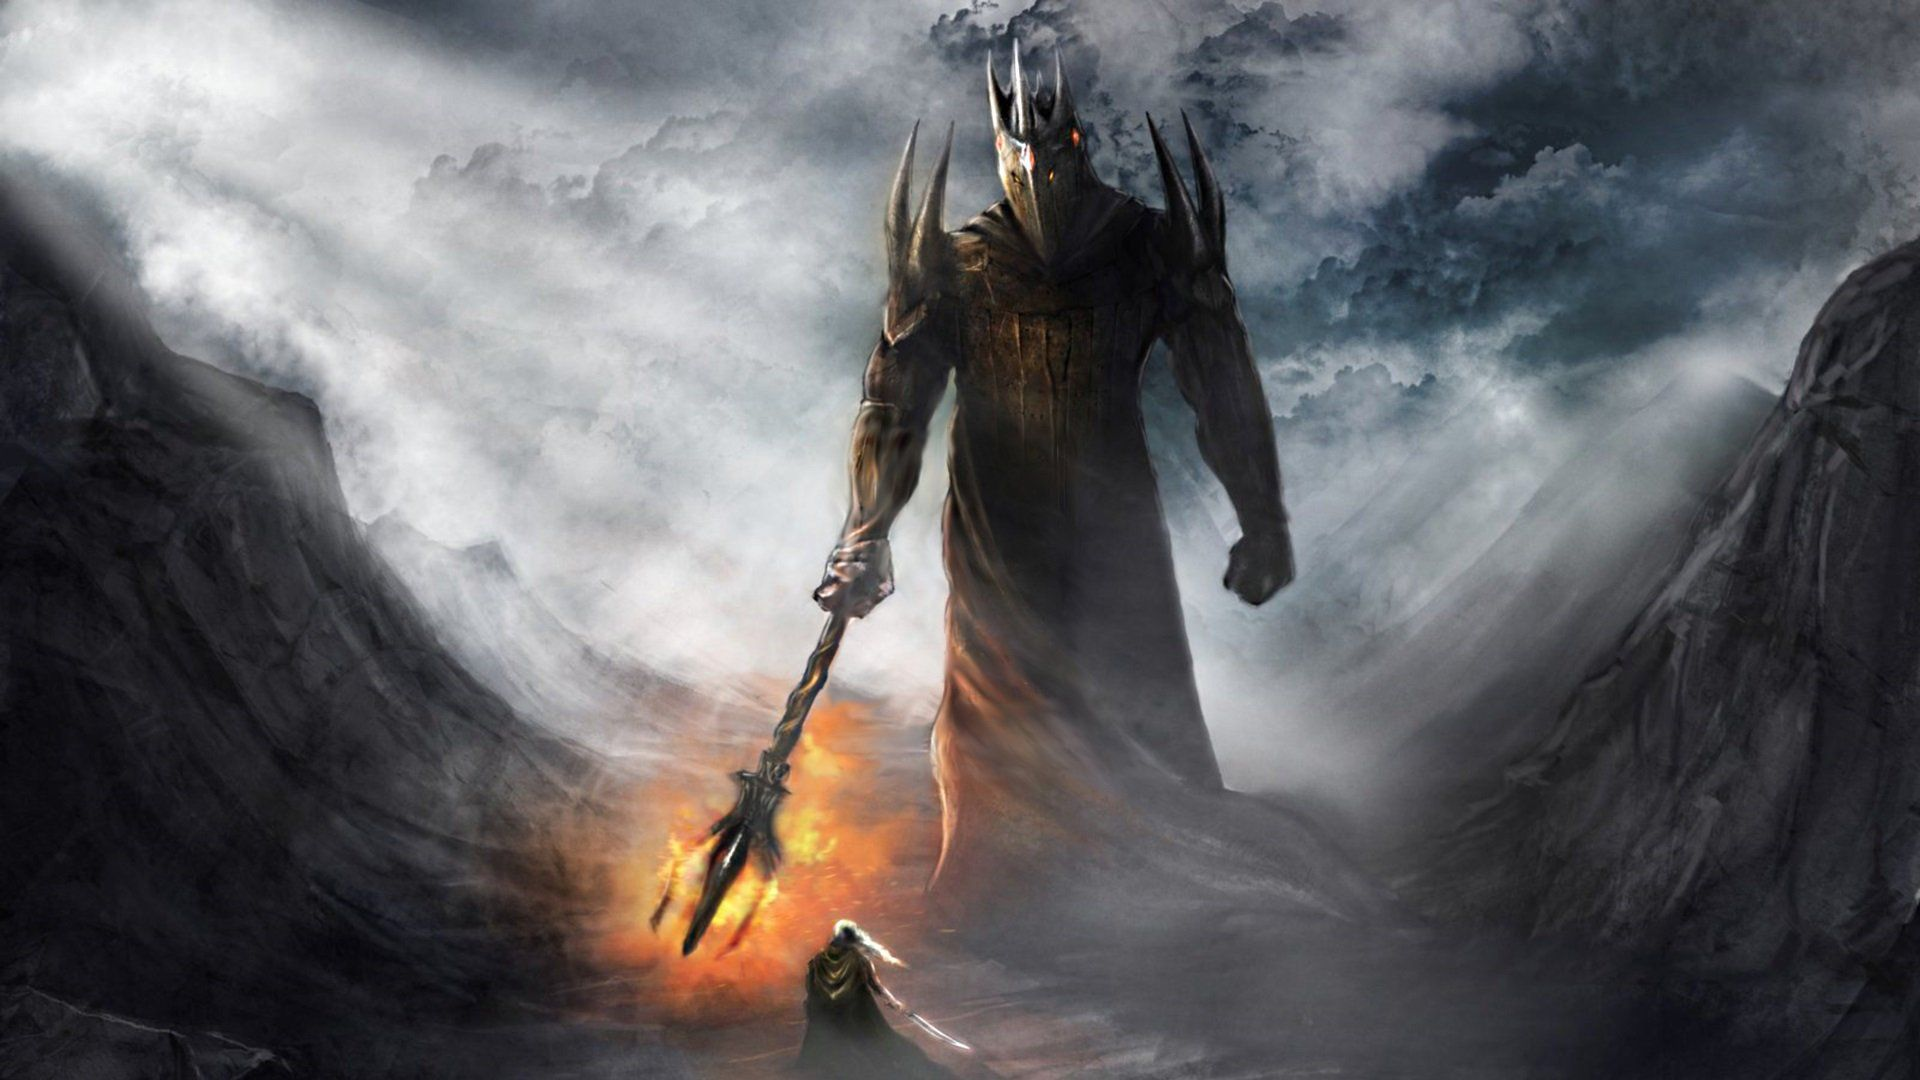 Lord of the Rings Image 2